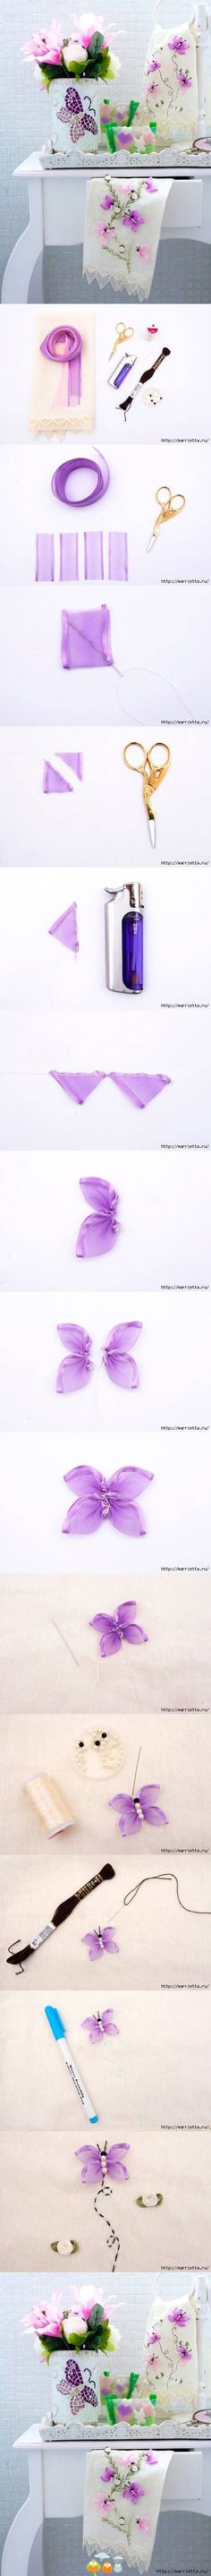 Ribbon butterfly for embellishing use w/photo tutorial...SO pretty and delicate looking